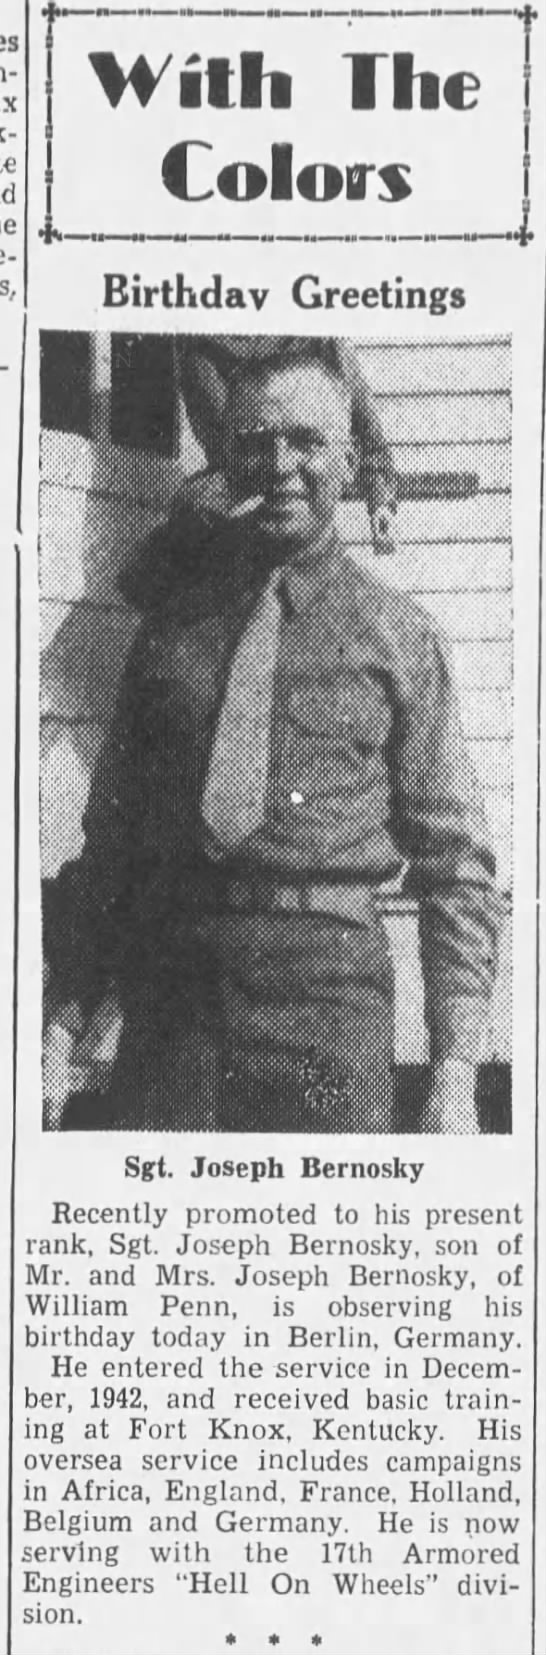 Sergeant Joseph Bernosky Republican and Herald (Pottsville, Pennsylvania, United States of America) · 13 Sep 1945